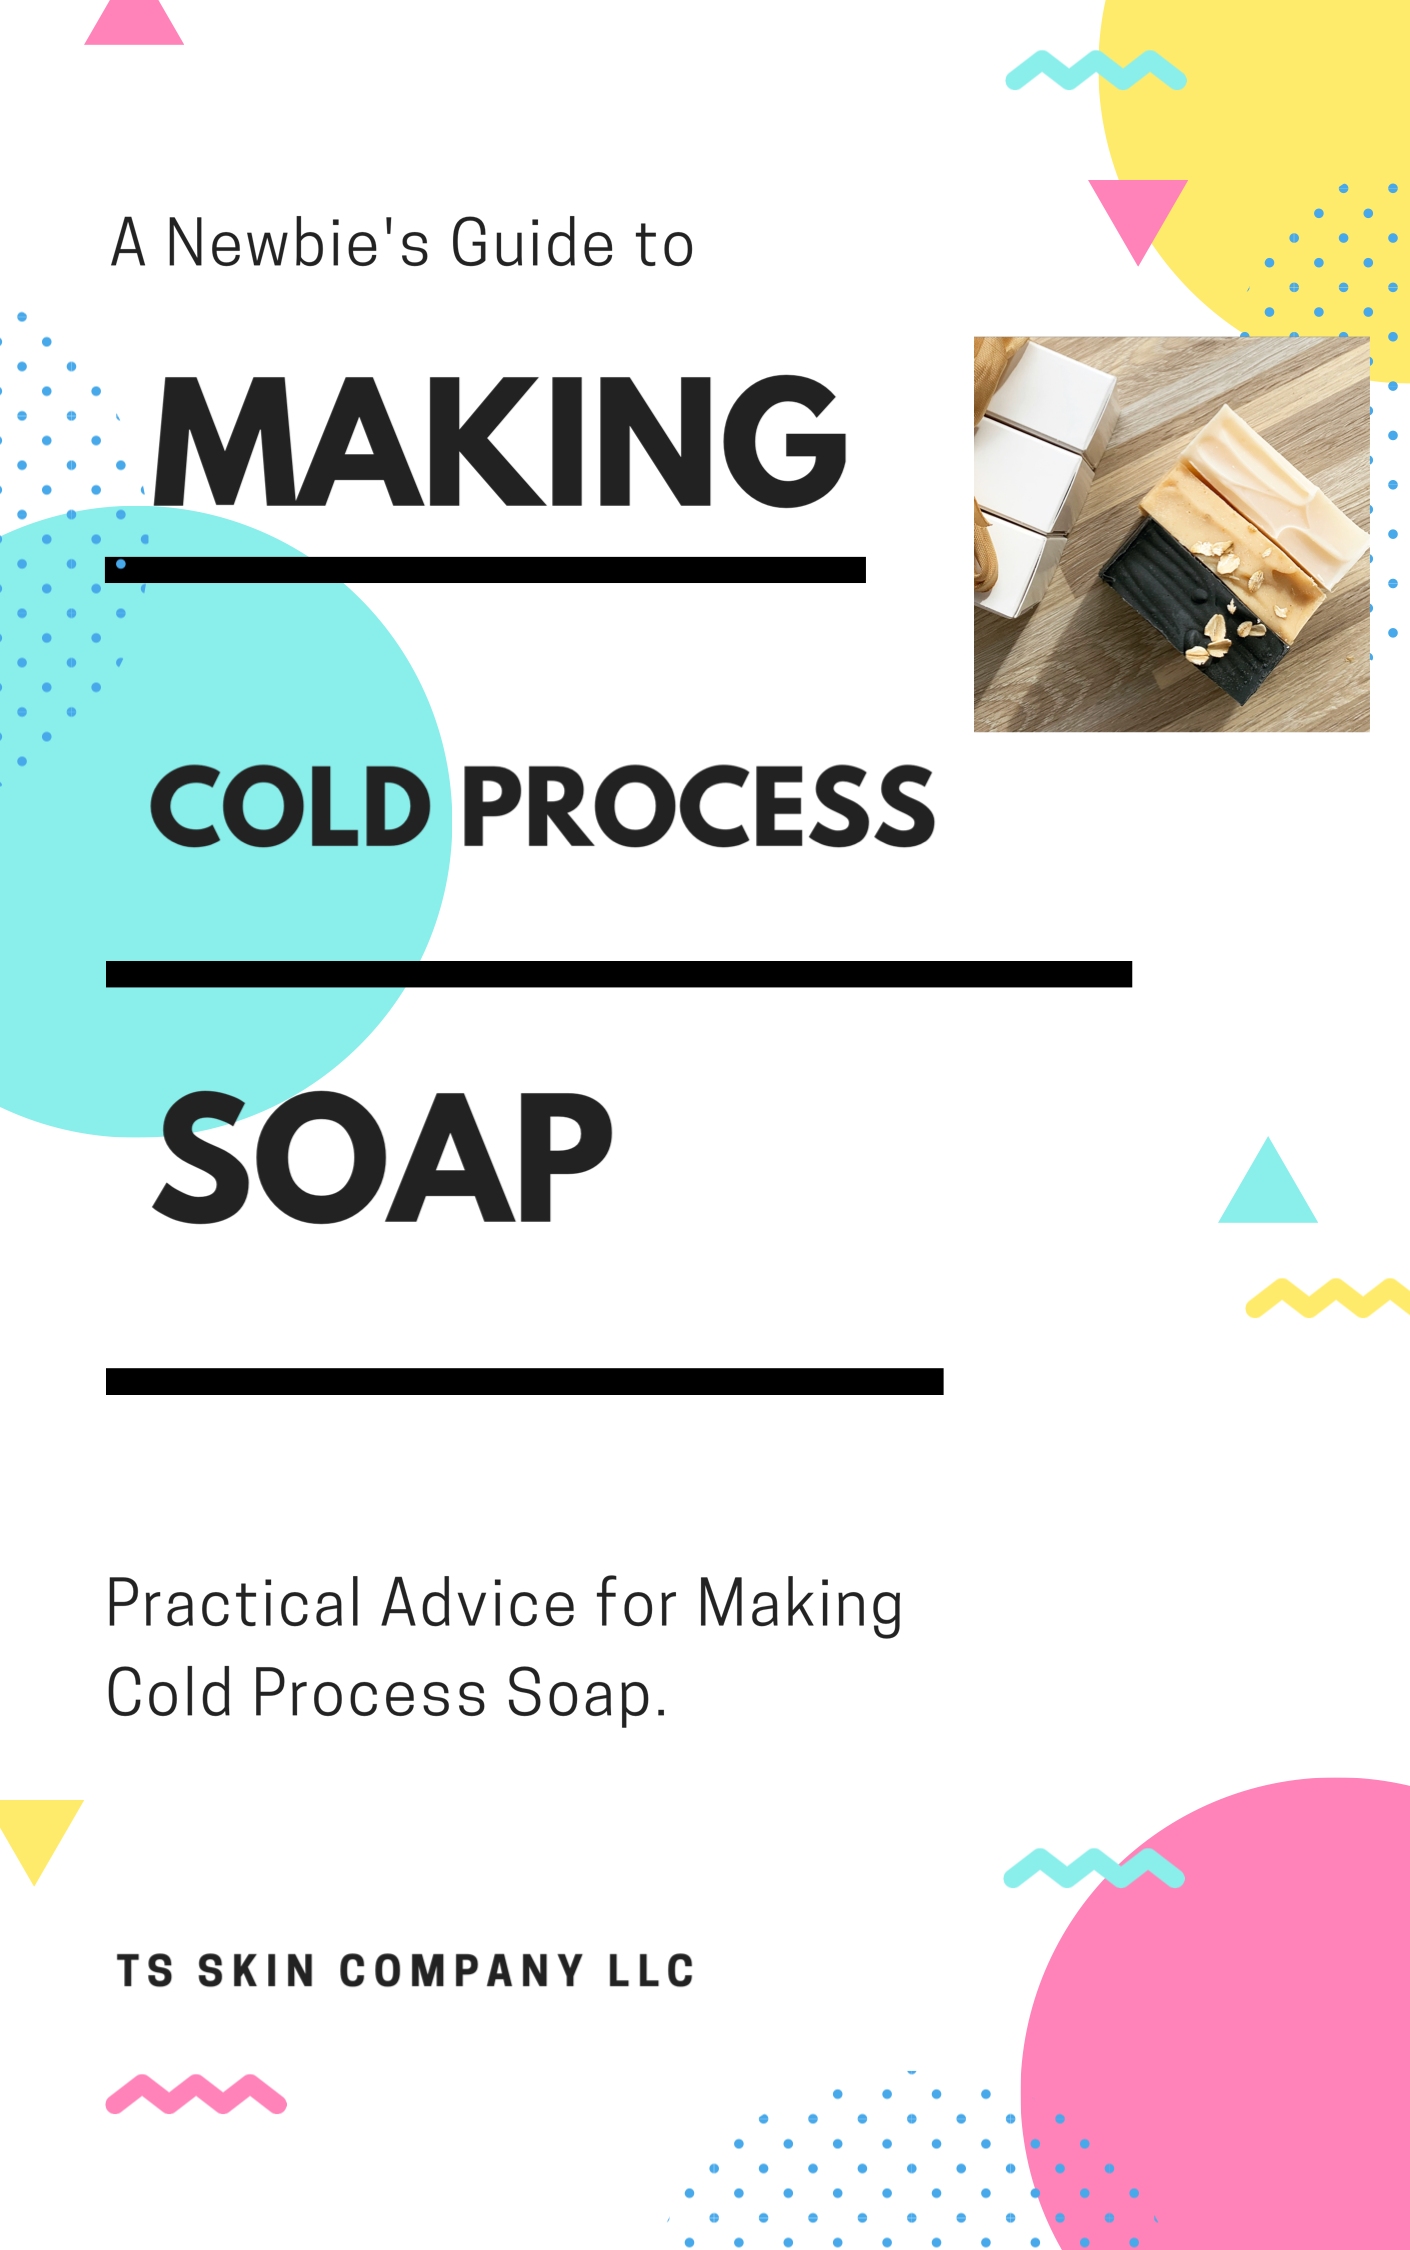 A Beginners Guide To Making Cold Process Soap - TS Skin Co.